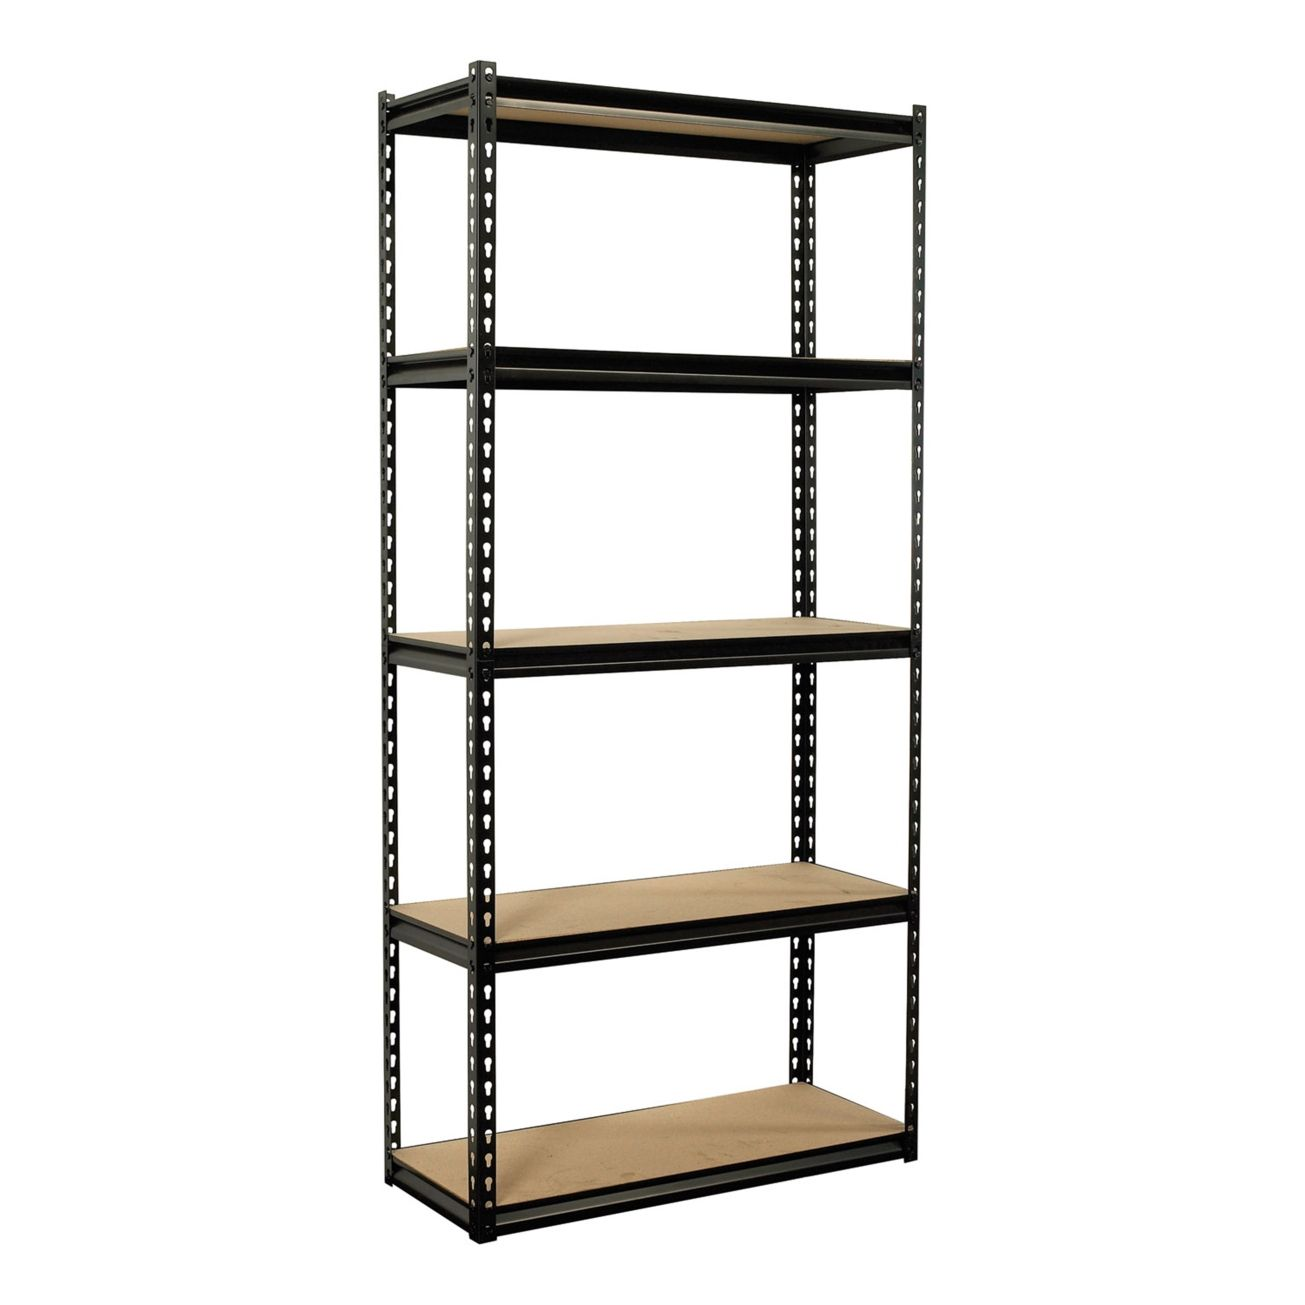 Gorilla Garage Racks Gorilla Rack Shelving Unit Workbench At Ace Hardware